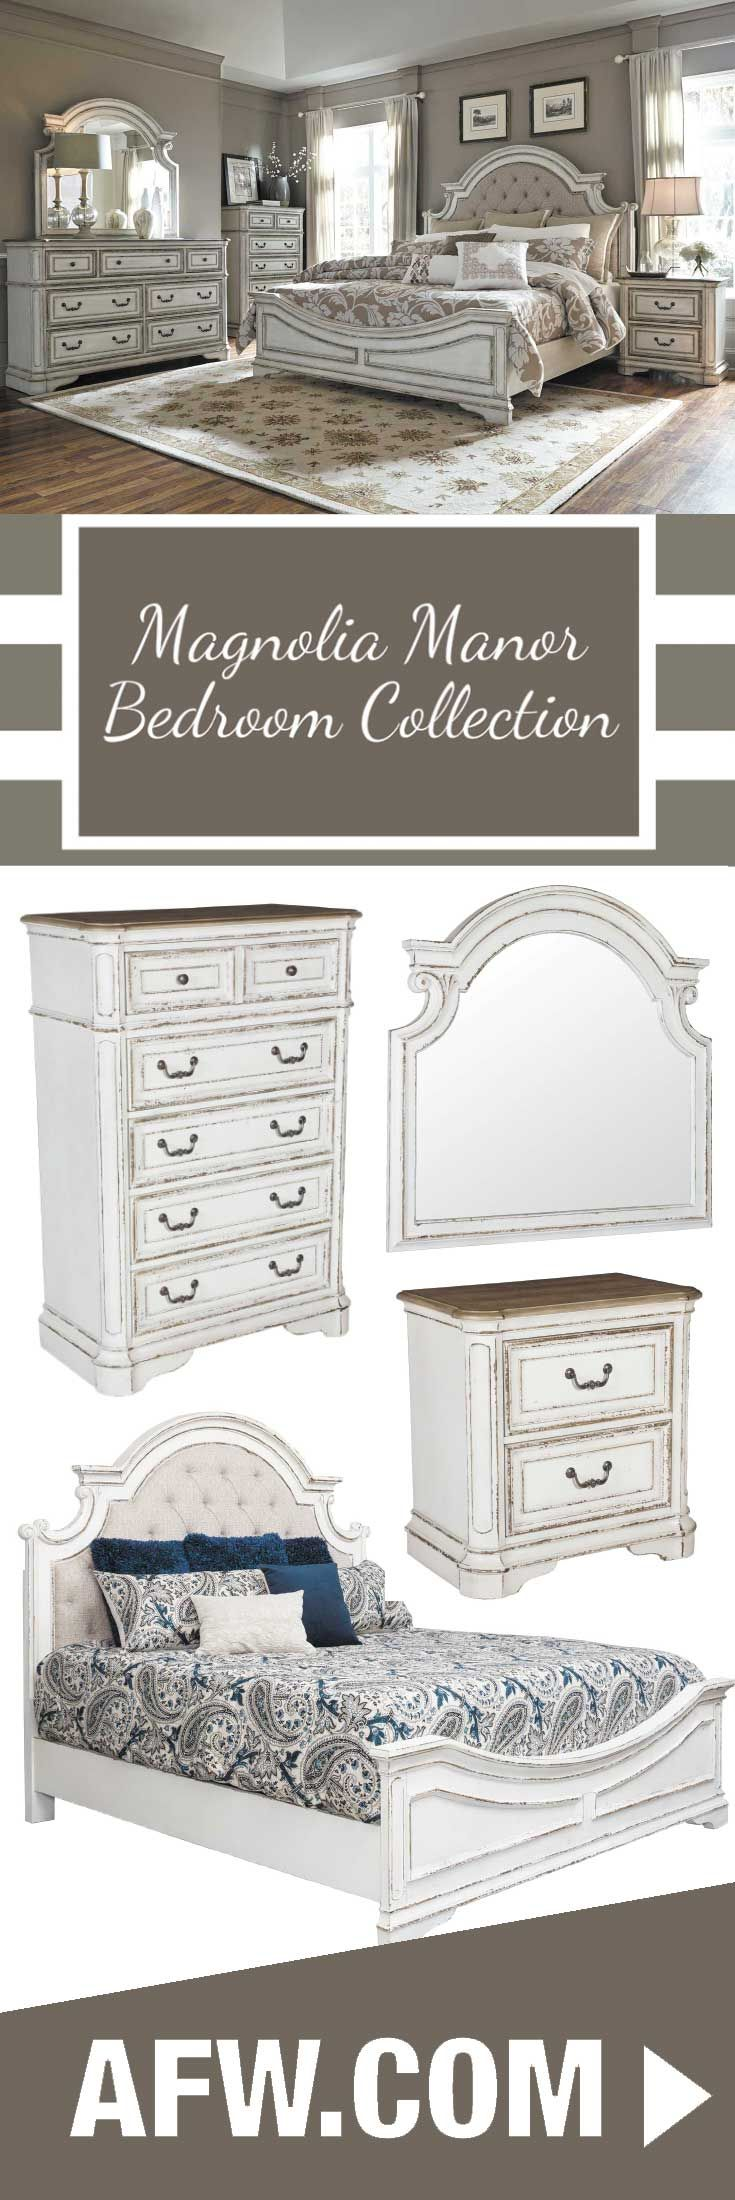 Addition union furniture pany antiques likewise union furniture pany - Bring The Refined Charm Of The French Country To Your Bedroom With The Magnolia Manor Bedroom Collection By Liberty Furniture The Antique Pewter Hardware